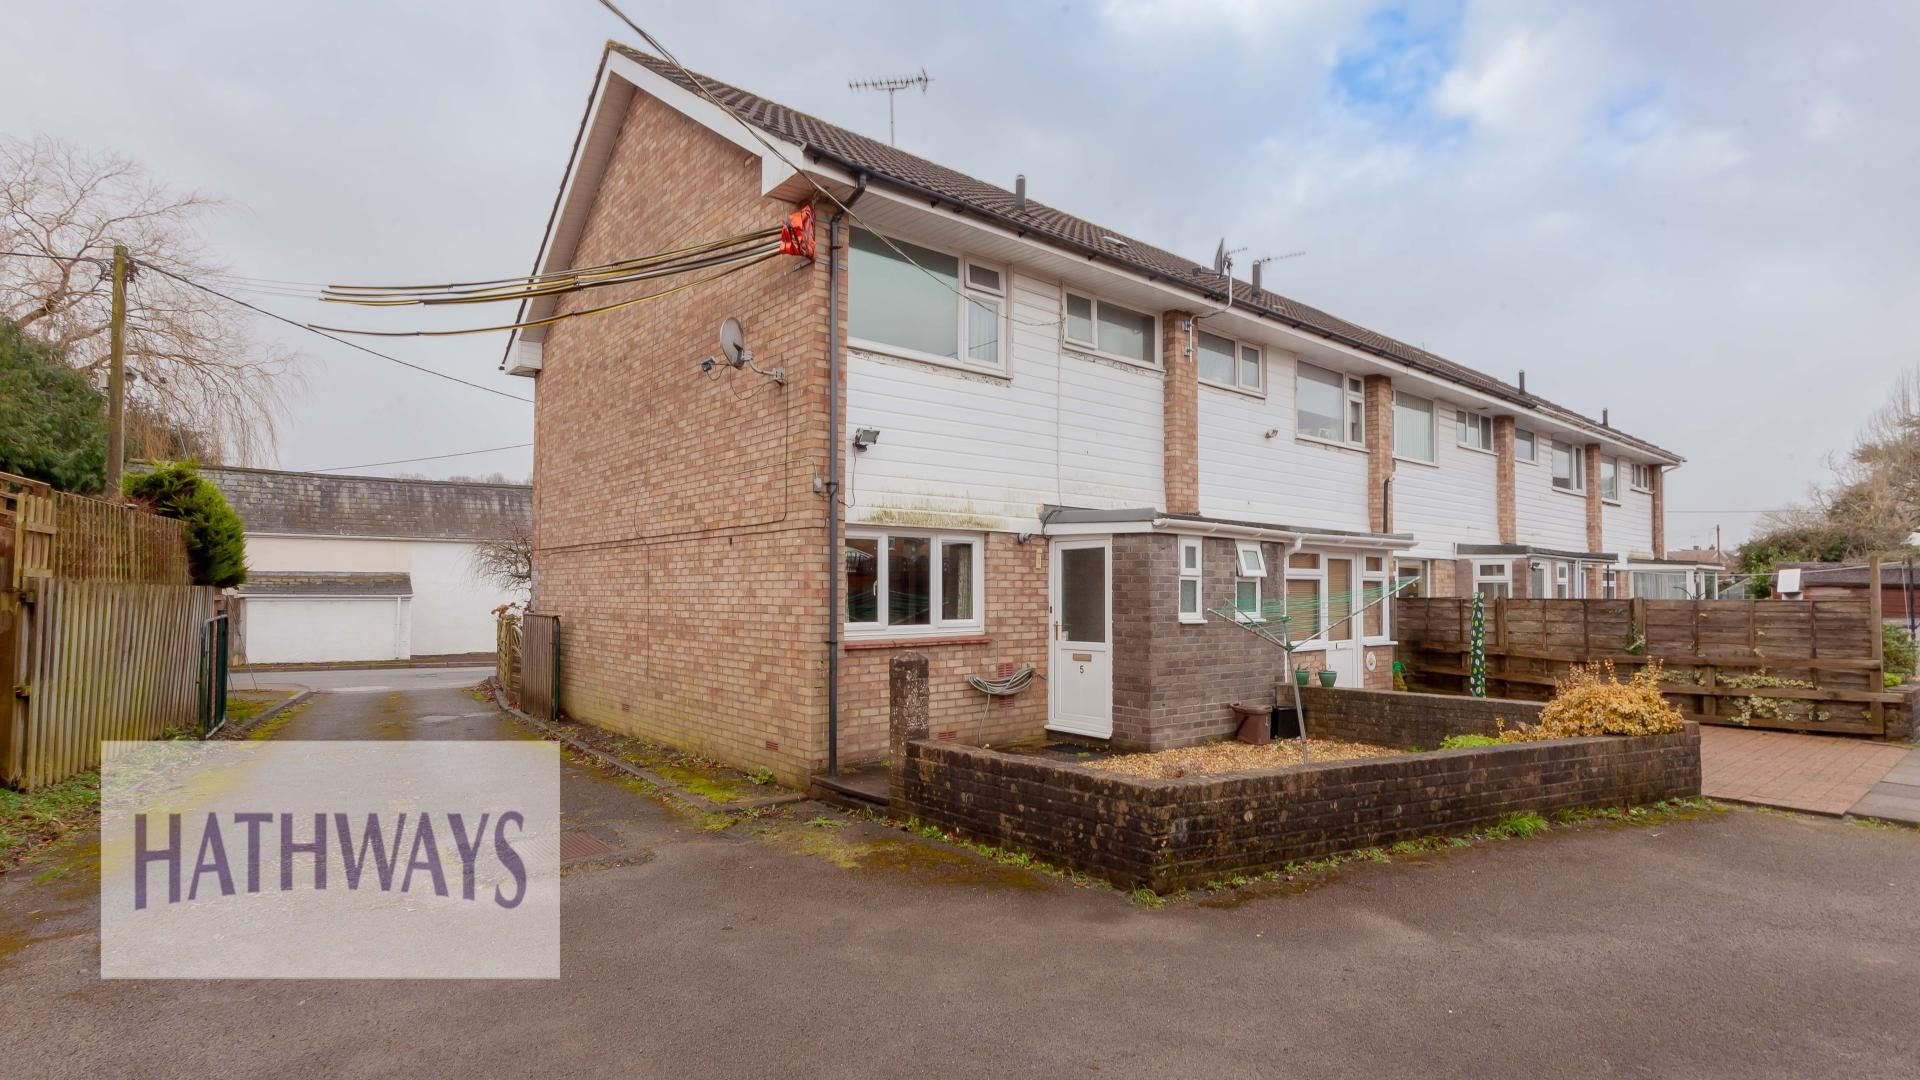 3 bed house for sale in Stokes Drive, NP18